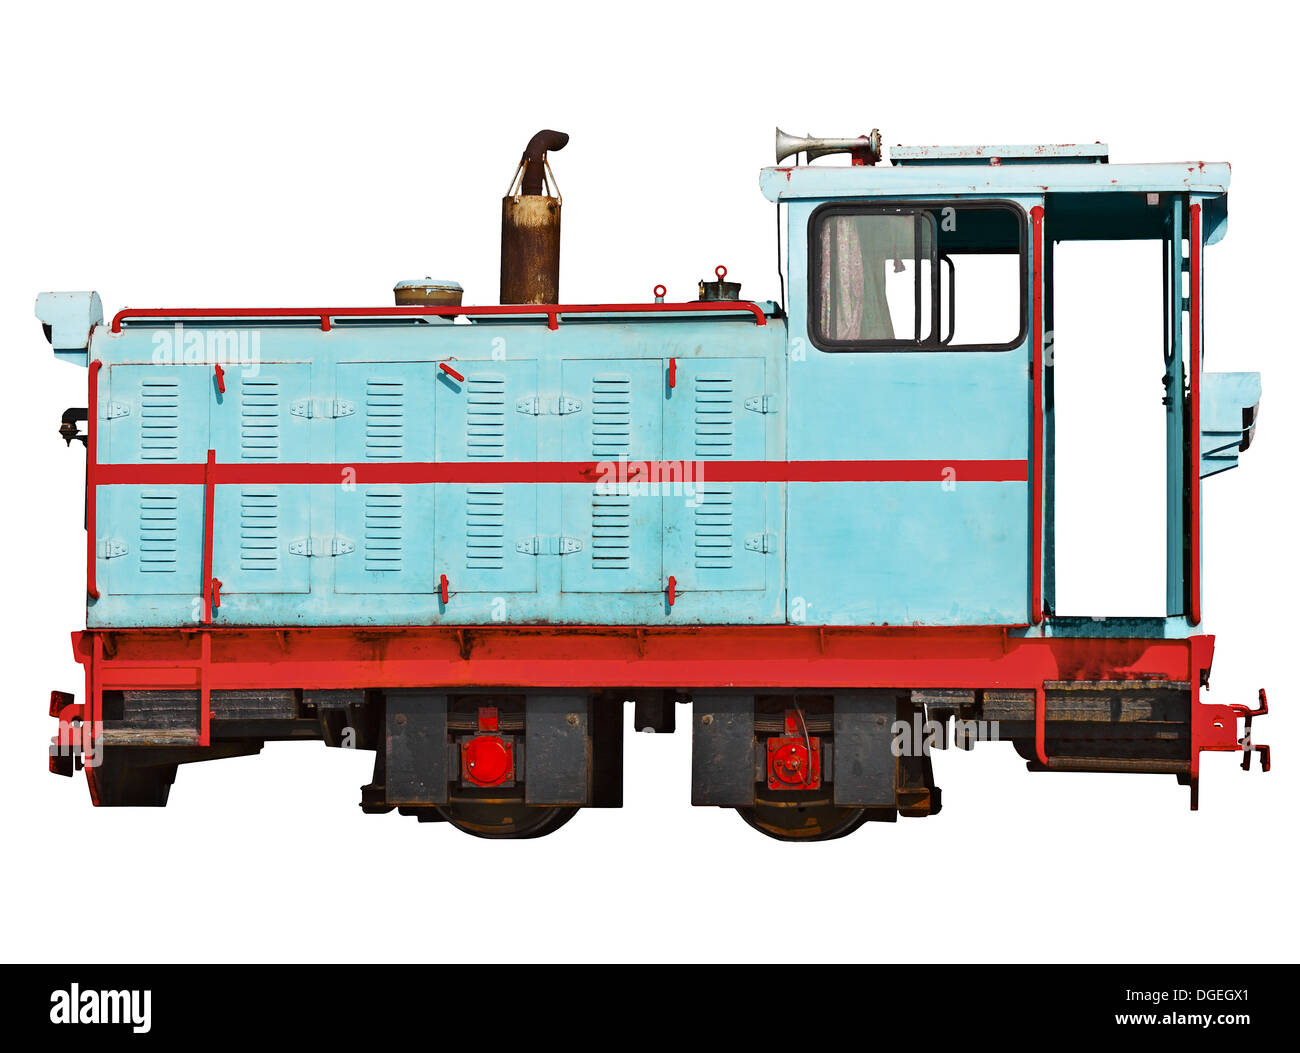 Vintage locomotive for a narrow-gauge railway isolated on white background - Stock Image